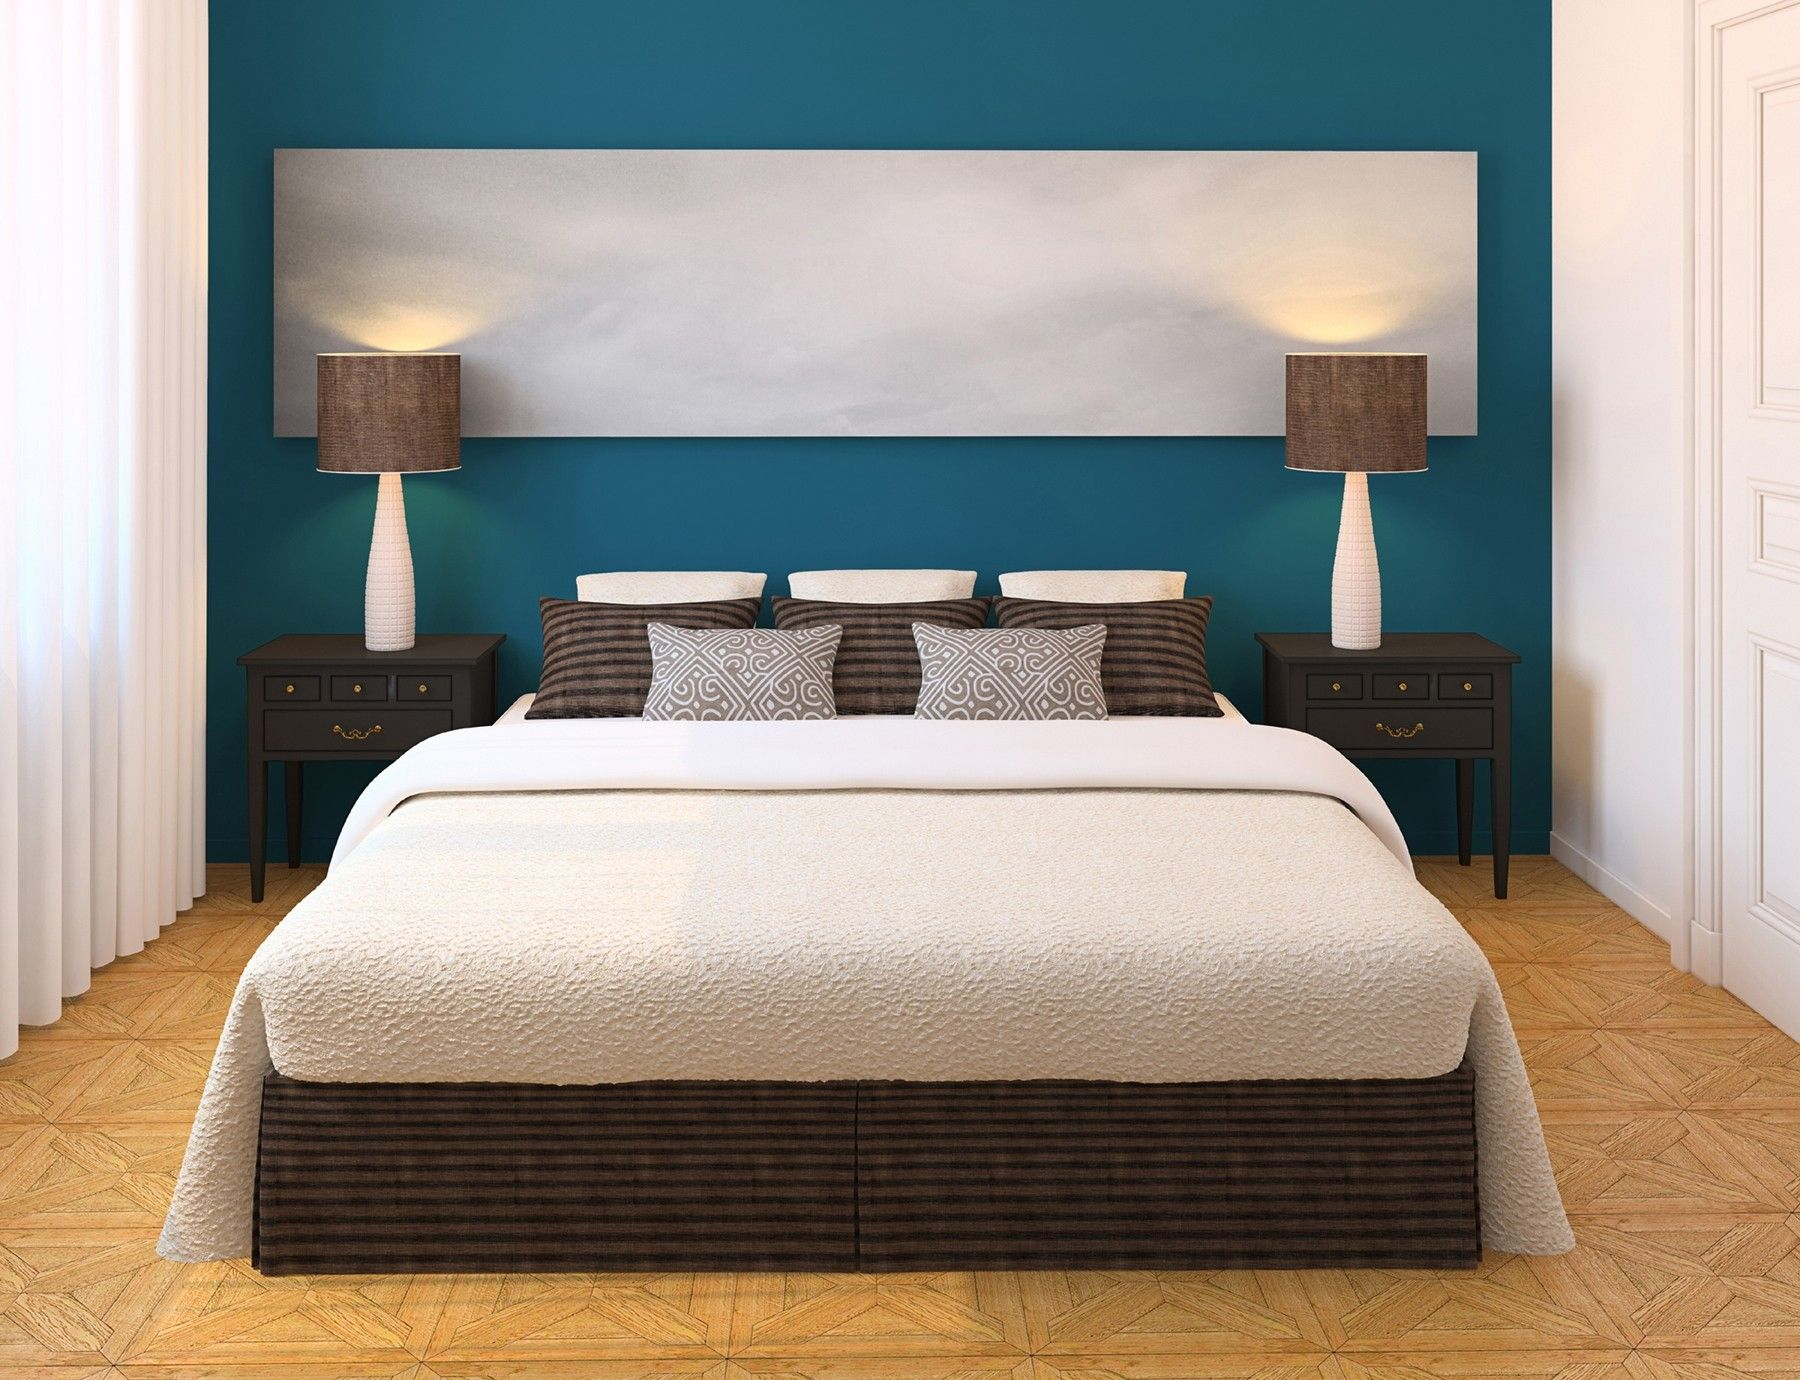 Image result for male bedroom color ideas bedrooms